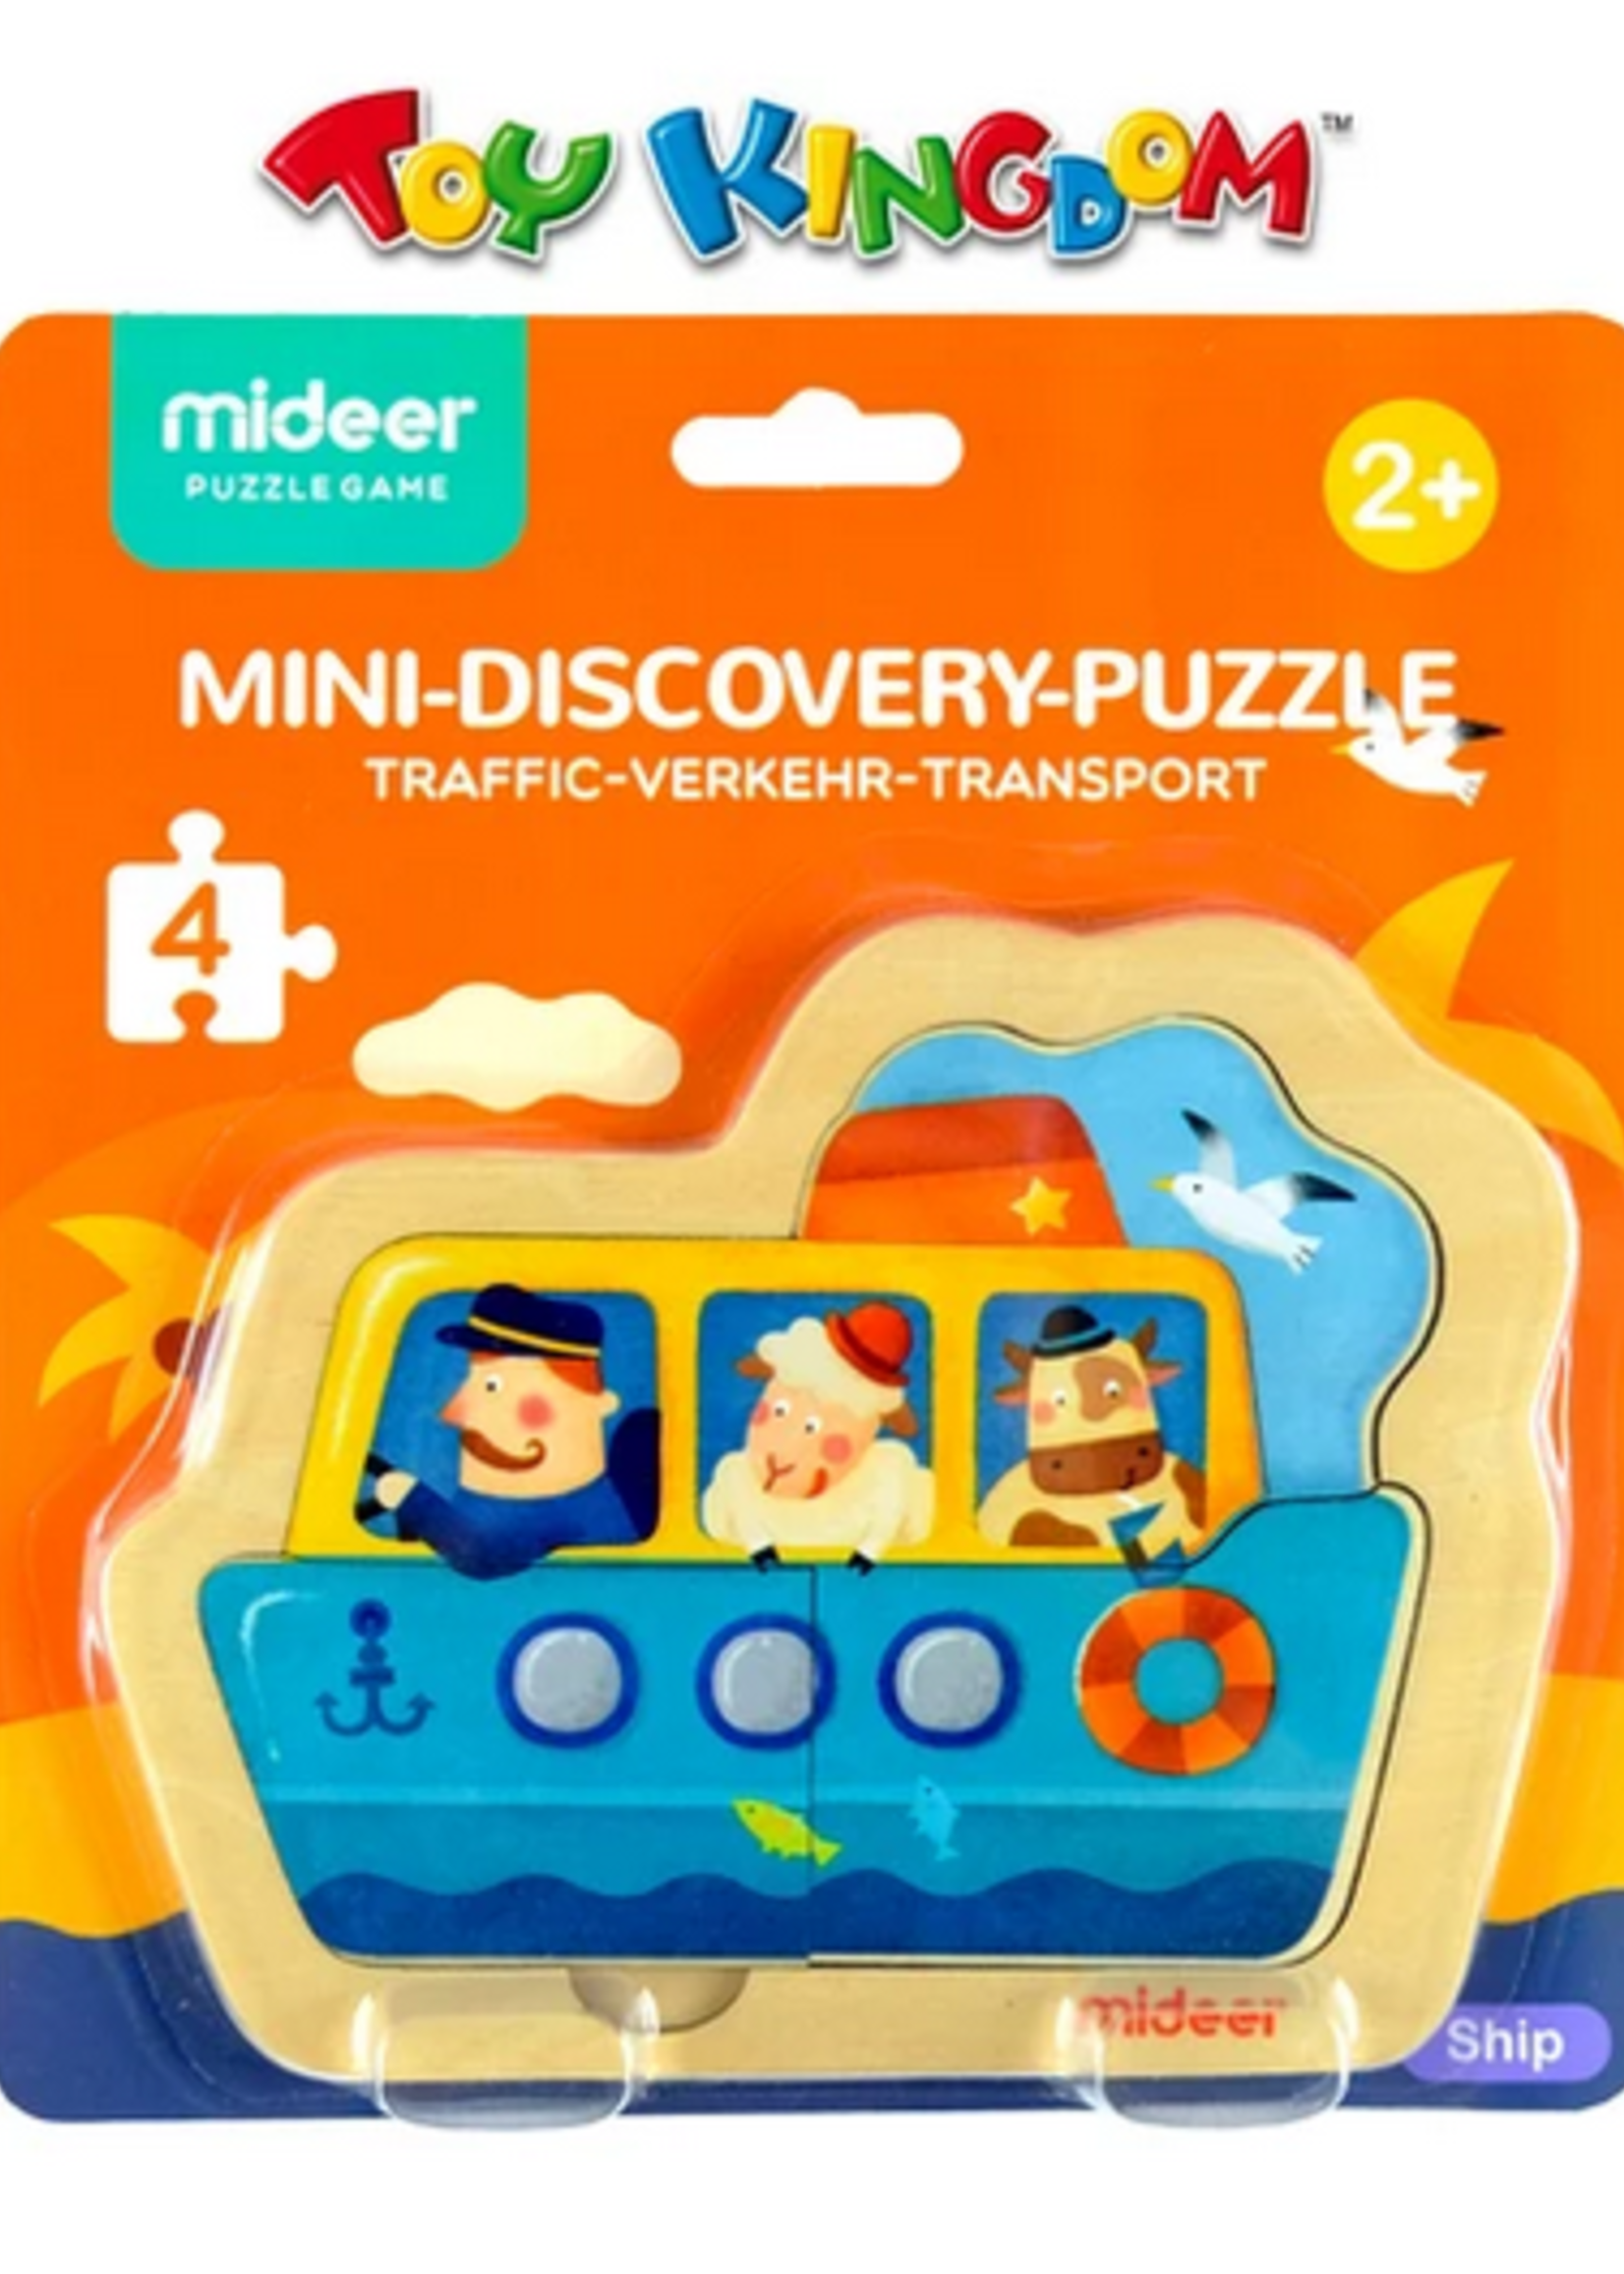 Mideer Mideer-AW20 MD3039 Mini Discovery Puzzle - Ship 4 pcs